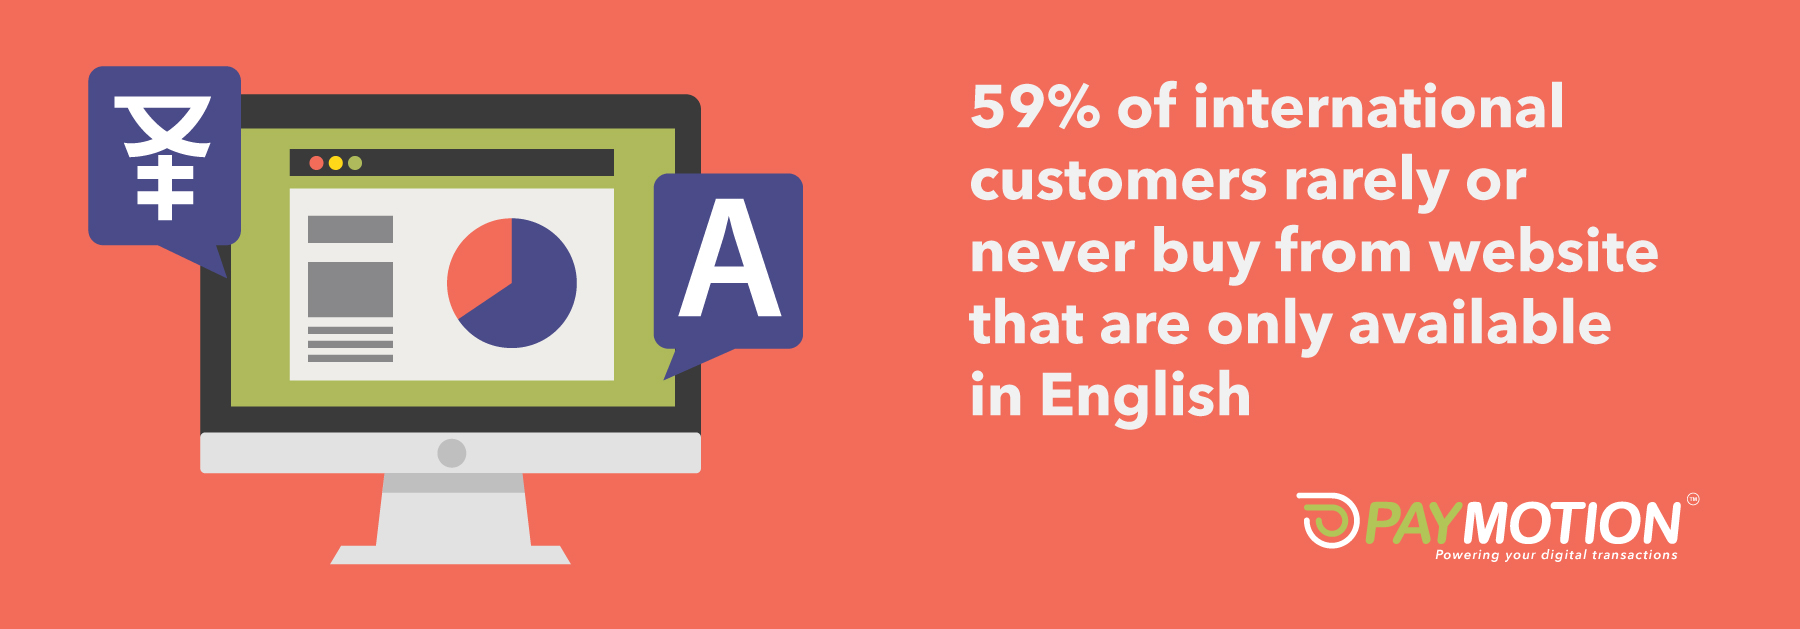 Global Growth. International customers never buy from English websites.